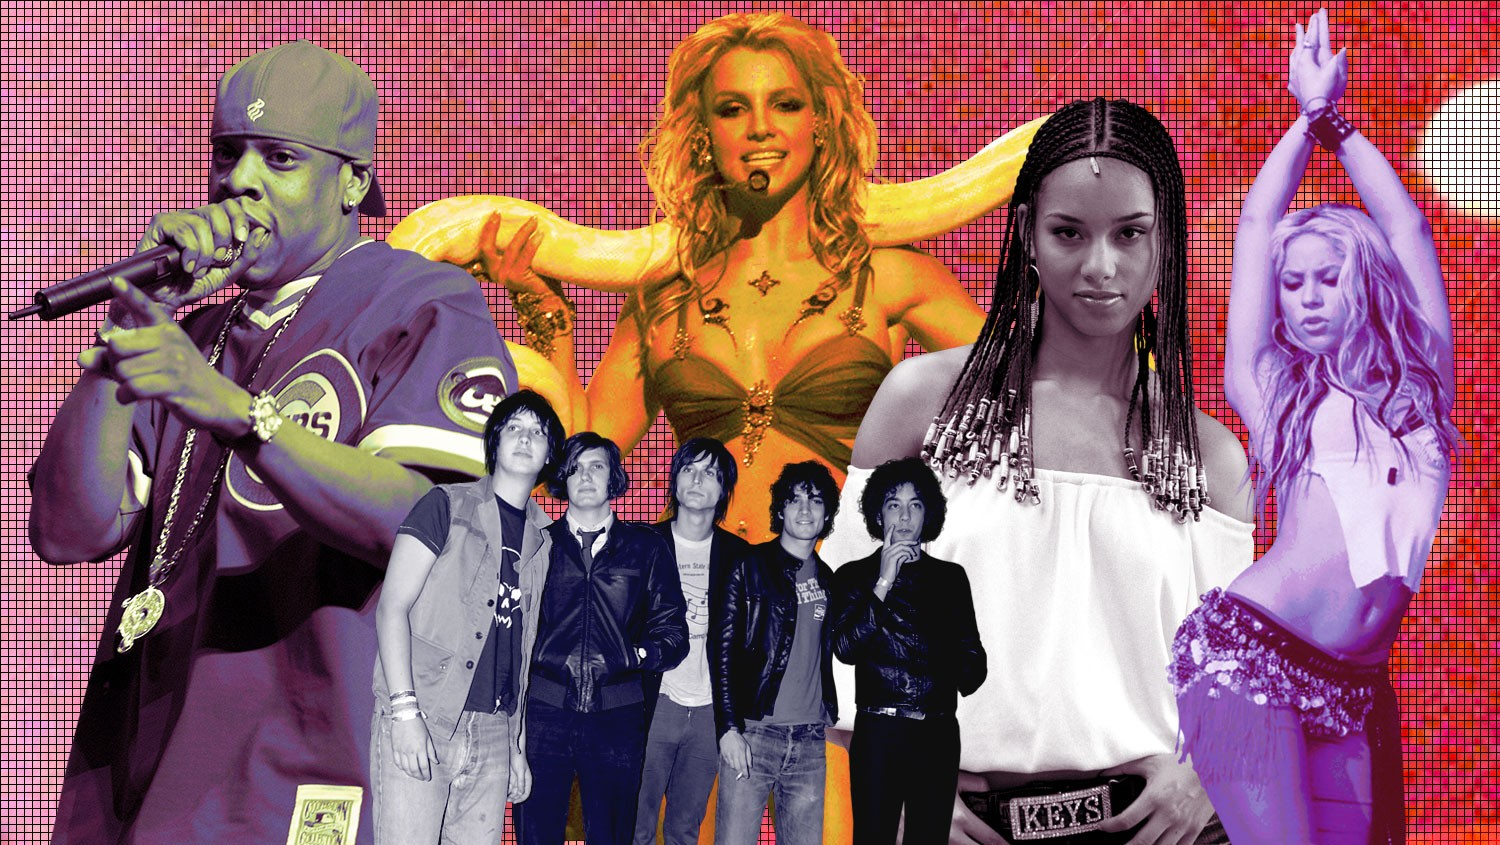 Top 100 Songs of 2001 Jay-Z The Strokes Alicia Keys Britney Spears Shakira